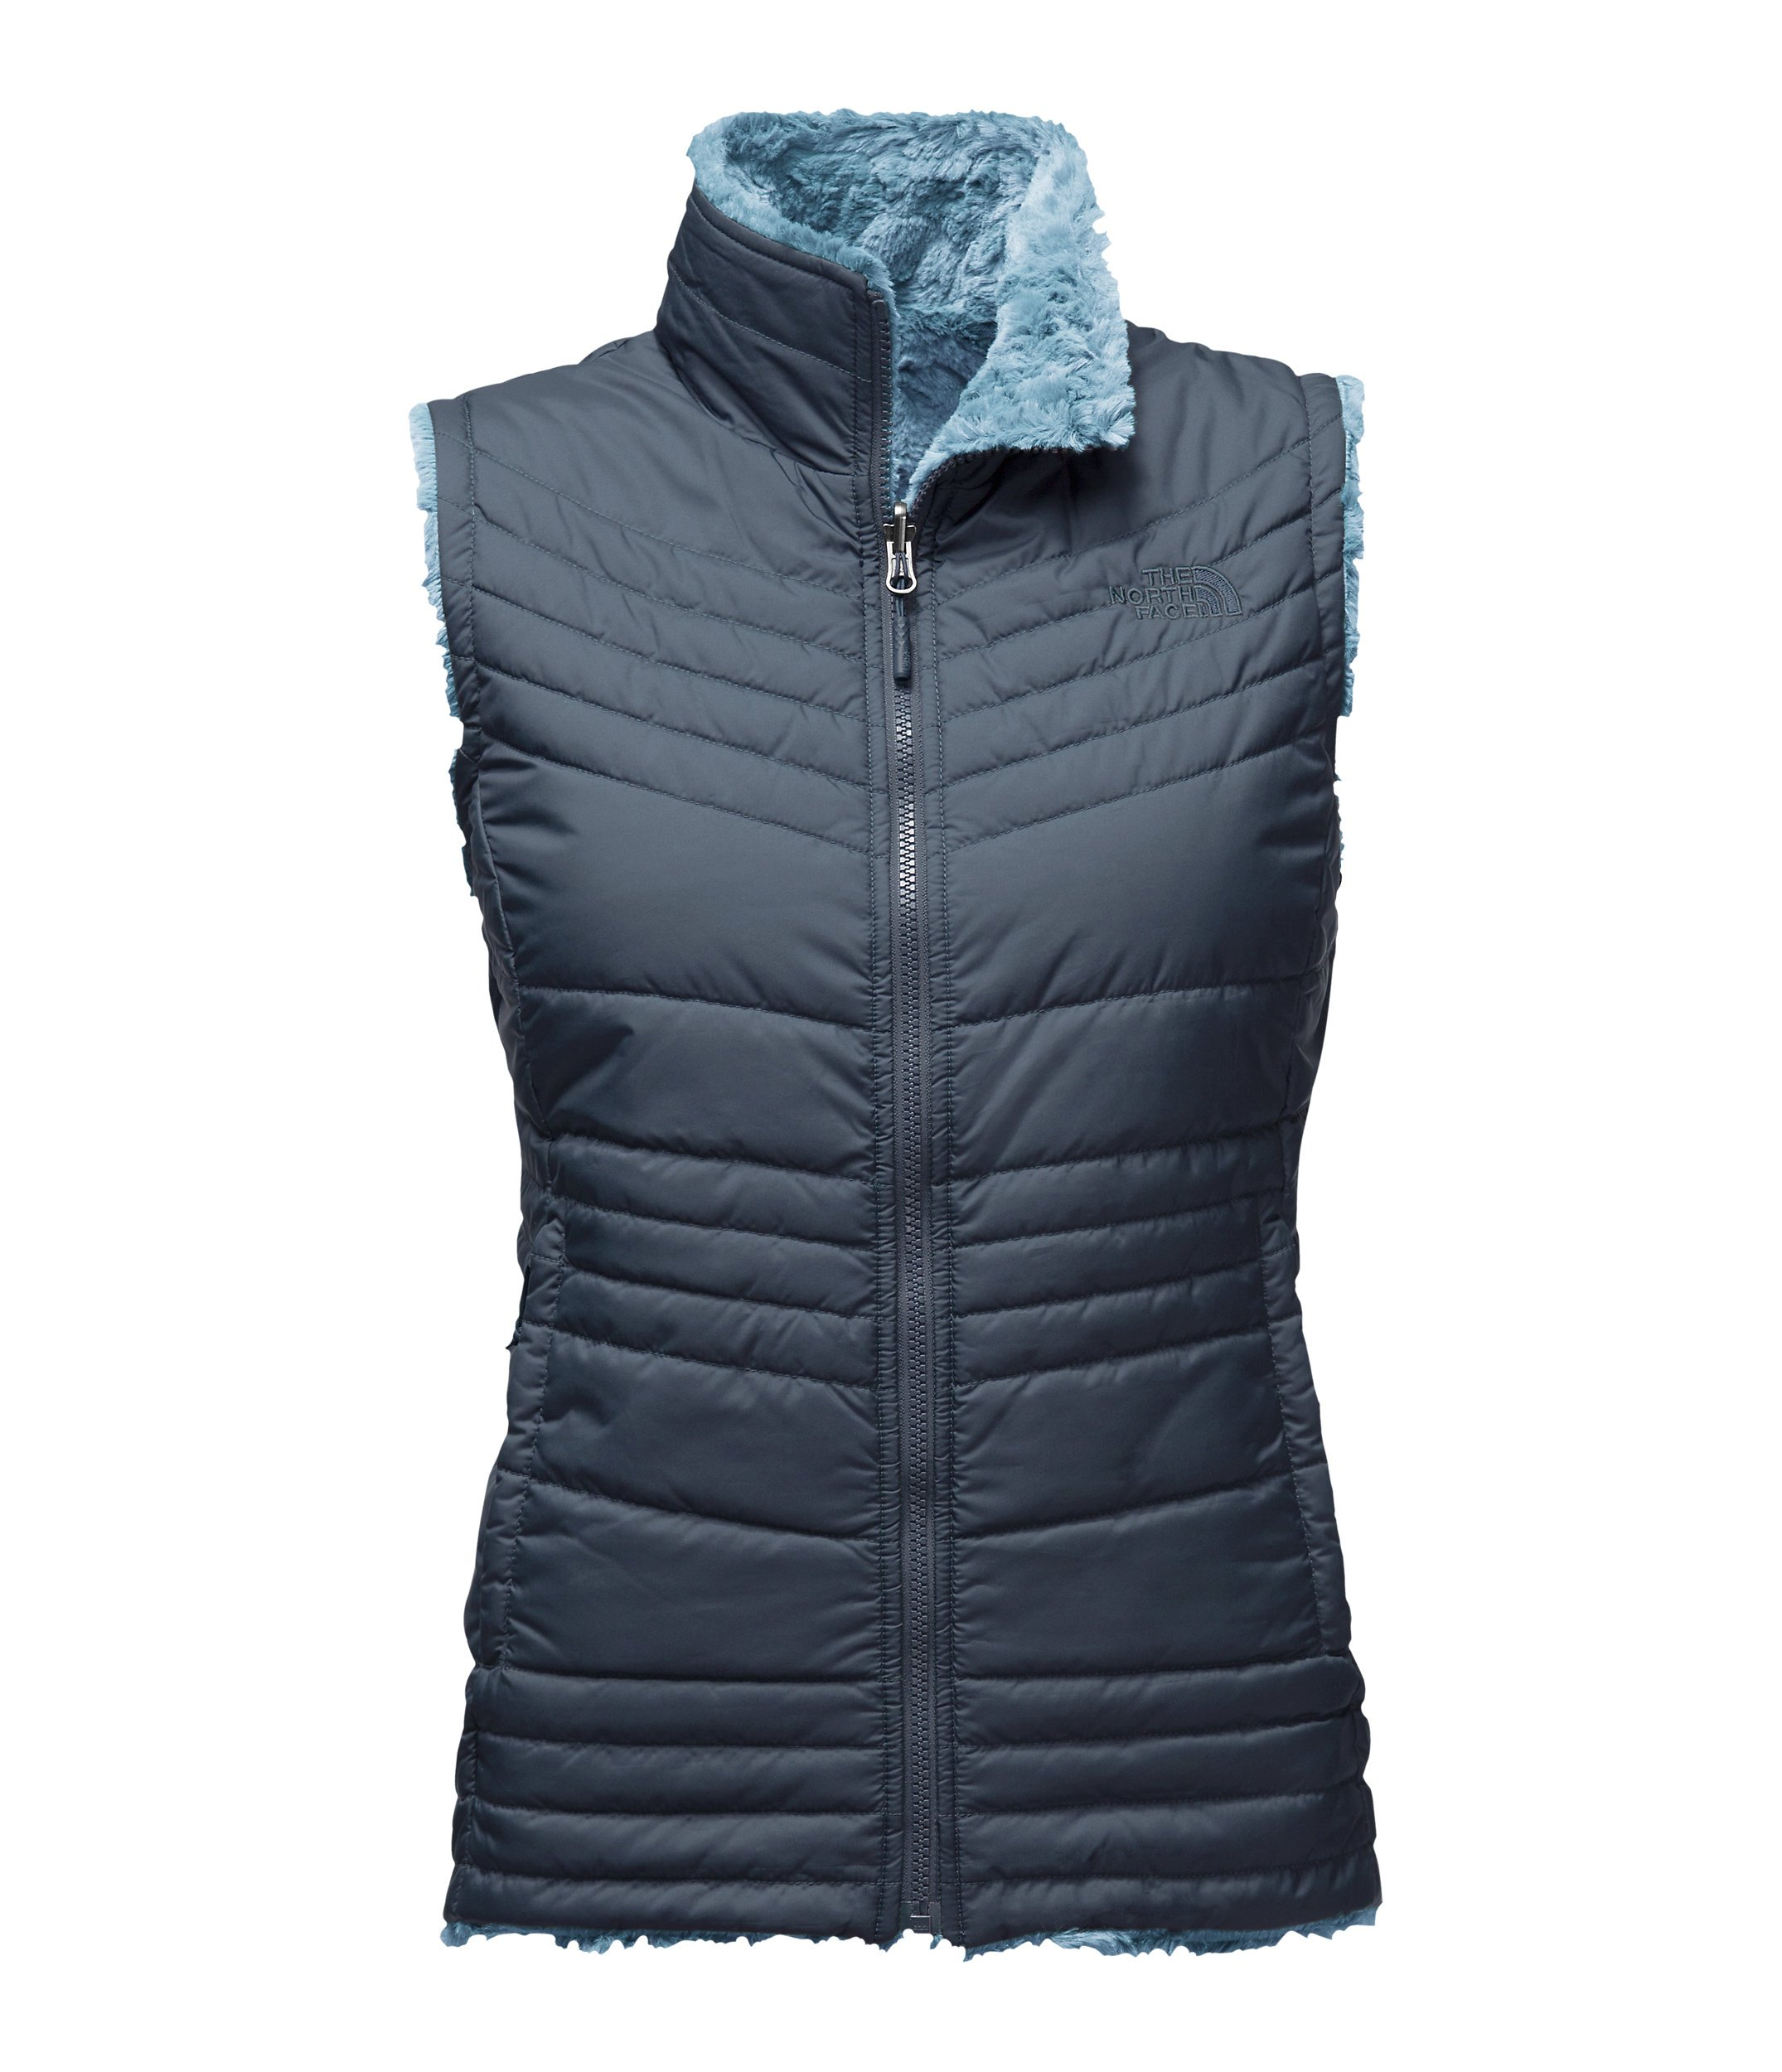 The North Face Women's Mossbud Swirl Vest - Ink Blue/Provincial Blue - S